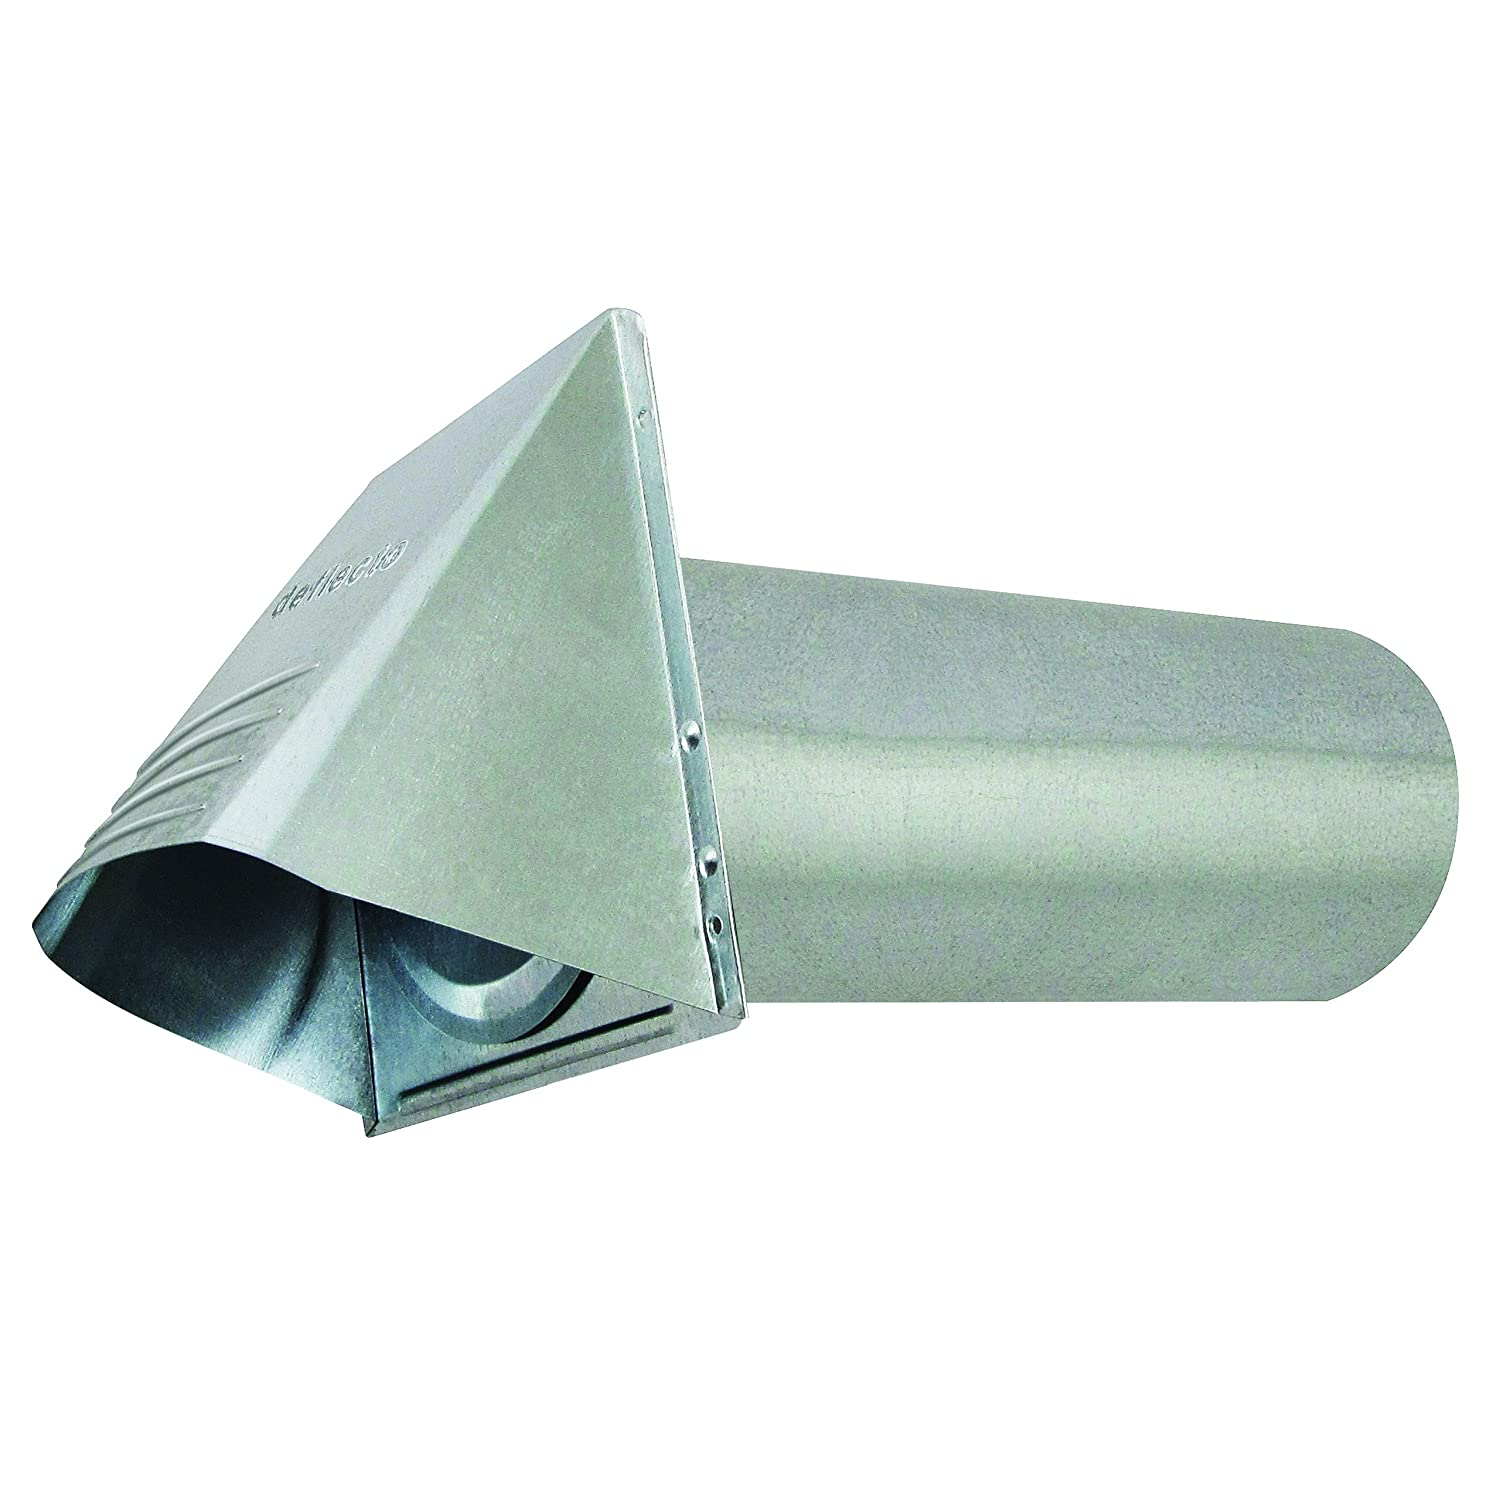 "Deflecto Dryer Vent, Wide Mouth Galvanized Vent Hood, 4"", Silver (GVH4NR) 4"""